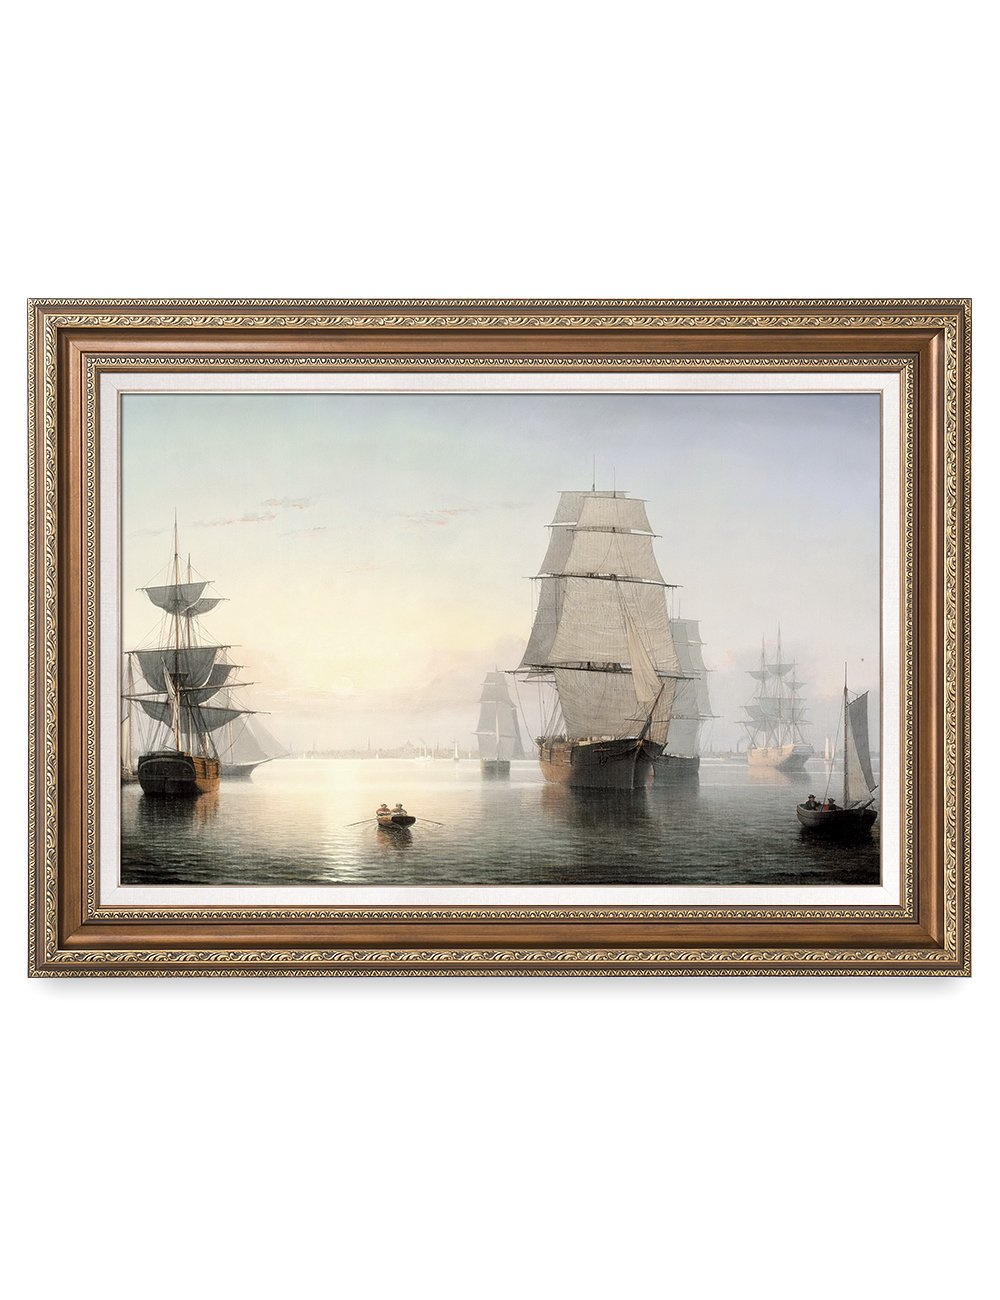 DecorArts - Boston Harbor, Sunset, Fitz Henry Lane Classic Art Reproductions. Giclee Prints& Museum Quality Framed Art for Wall Decor. Framed size: 35x25'' by DECORARTS